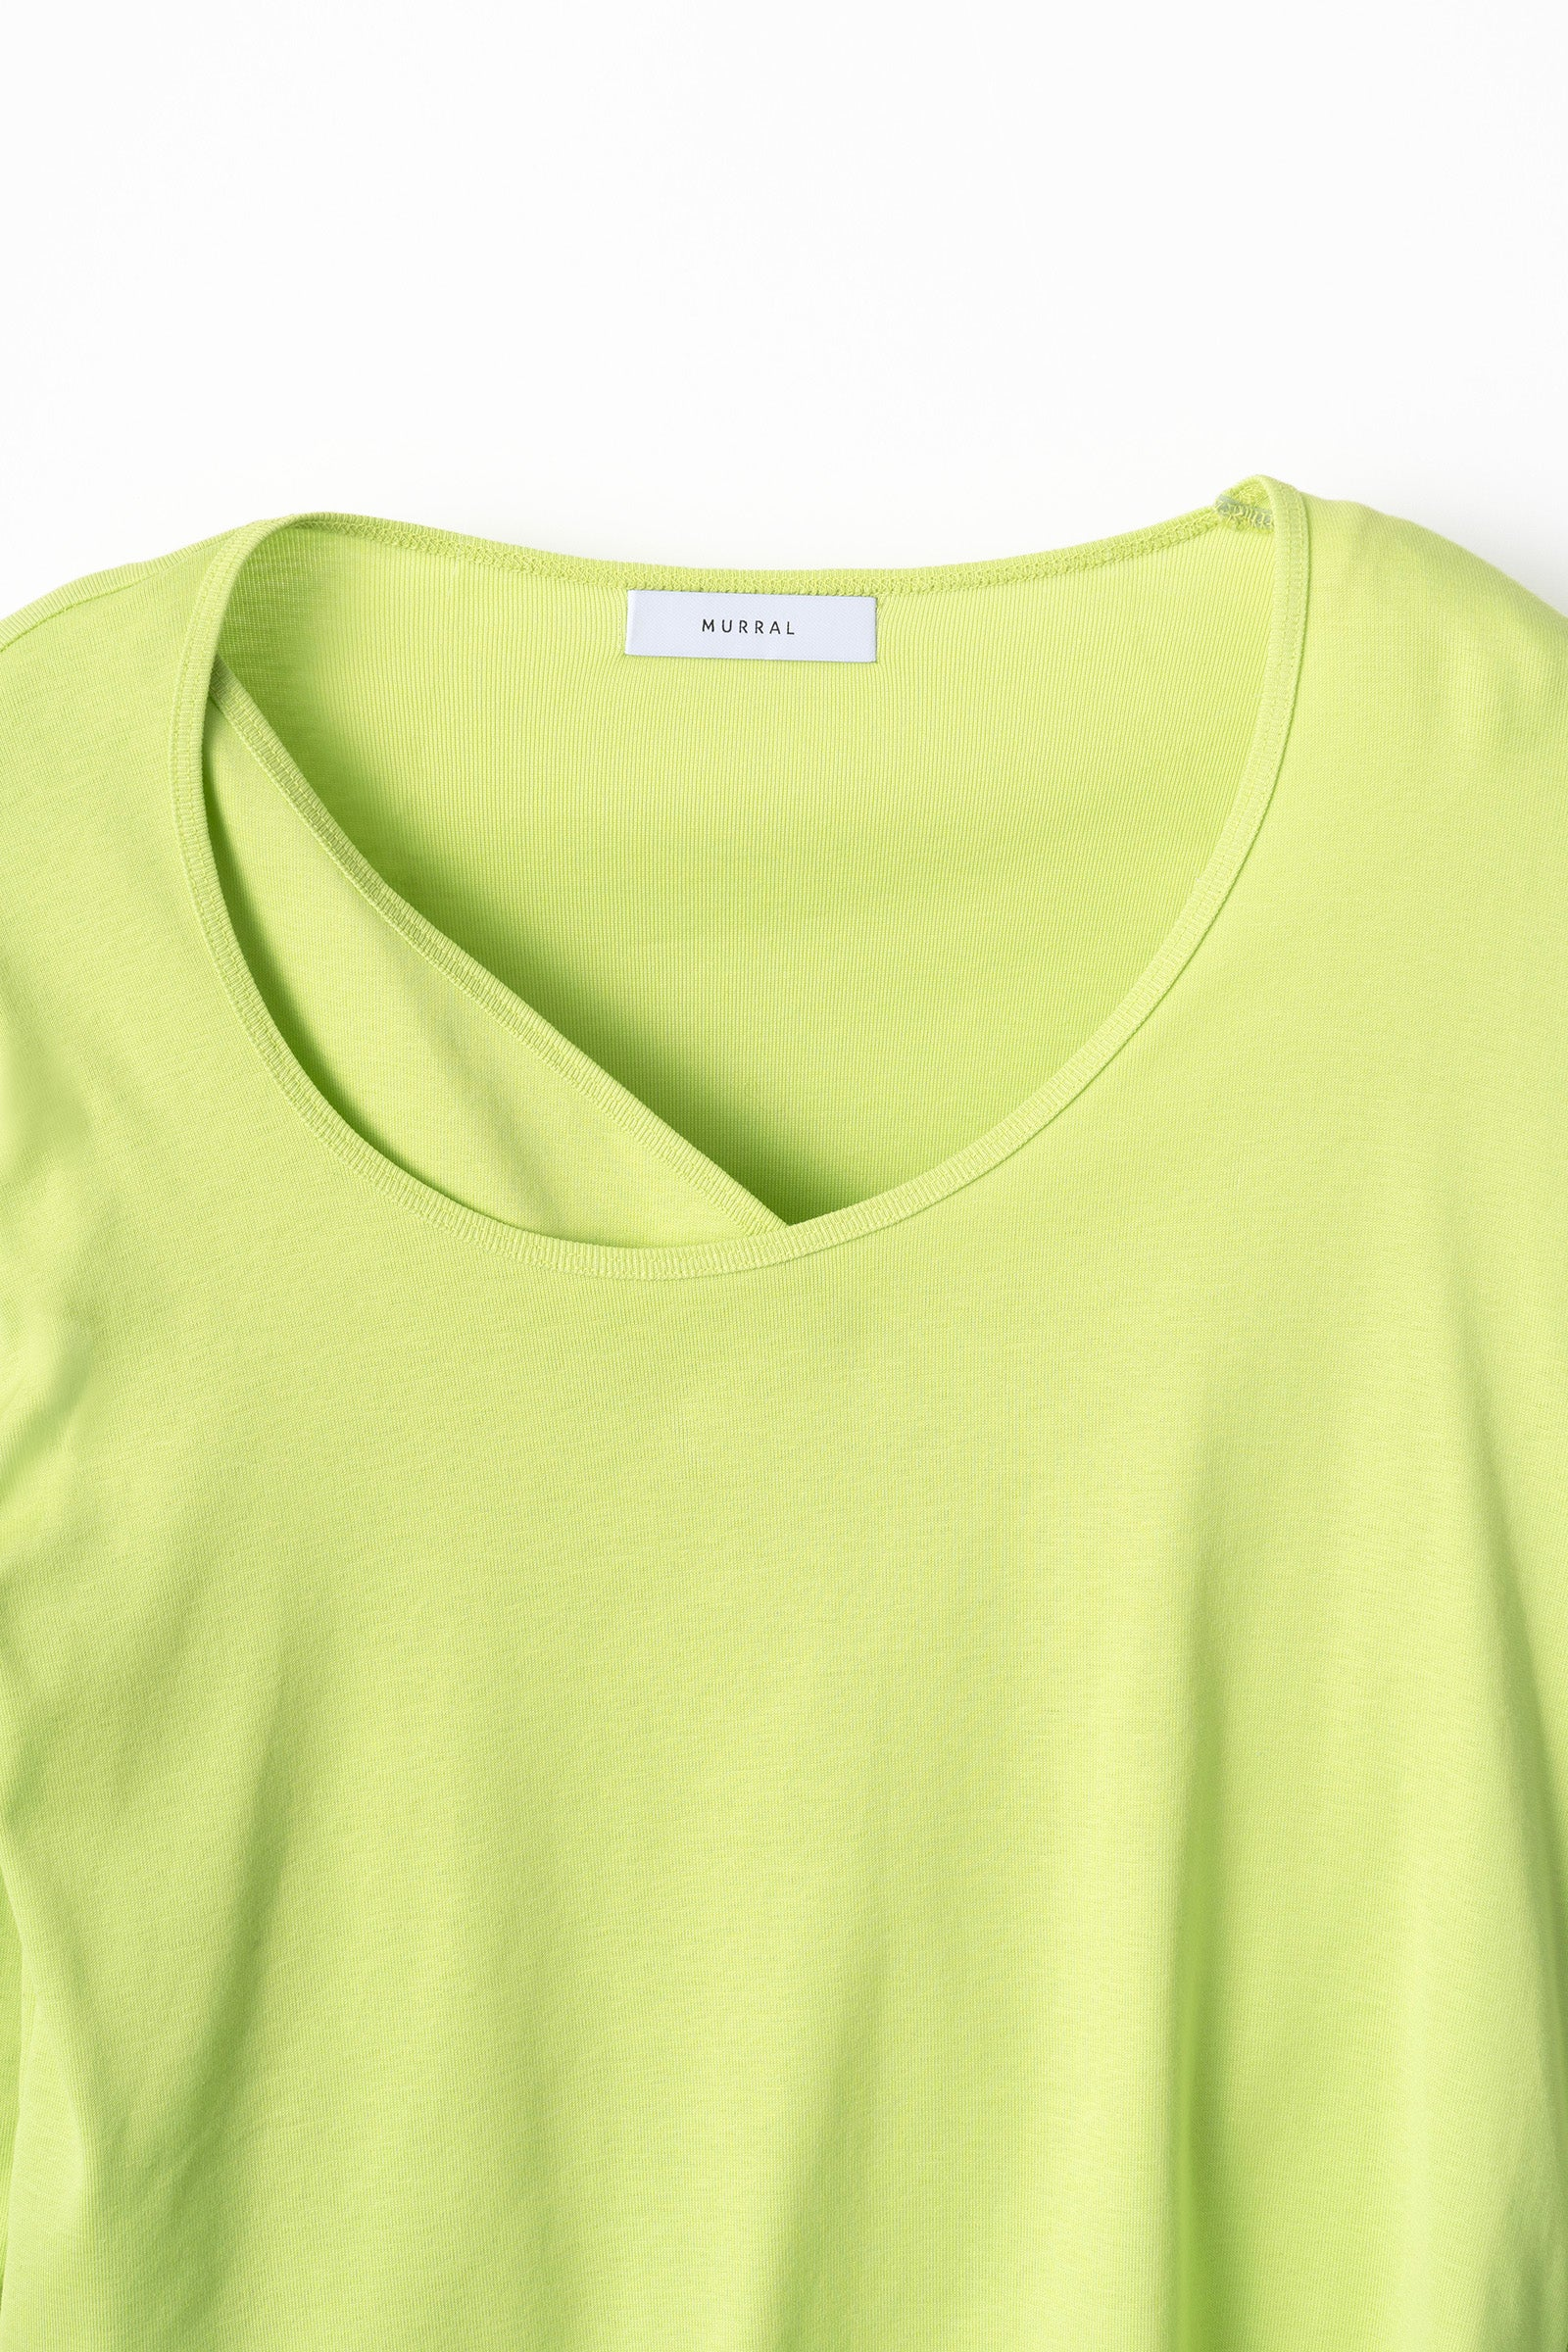 MURRAL layered asymmetry top (light green)